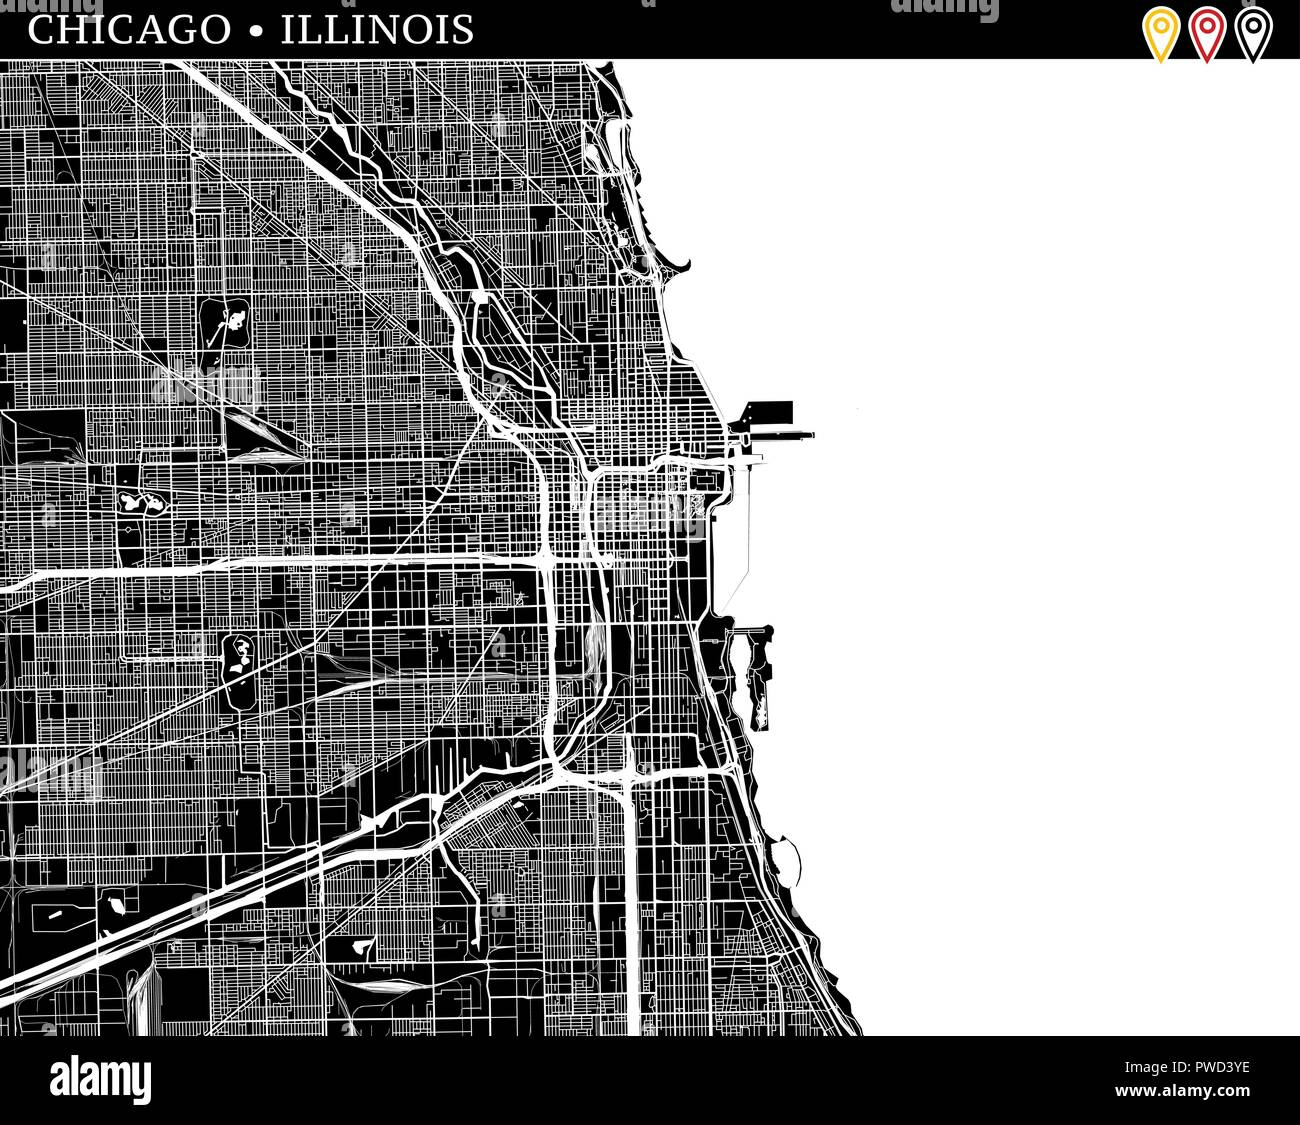 Simple Map Of Chicago Illinois Usa Black And White Version For